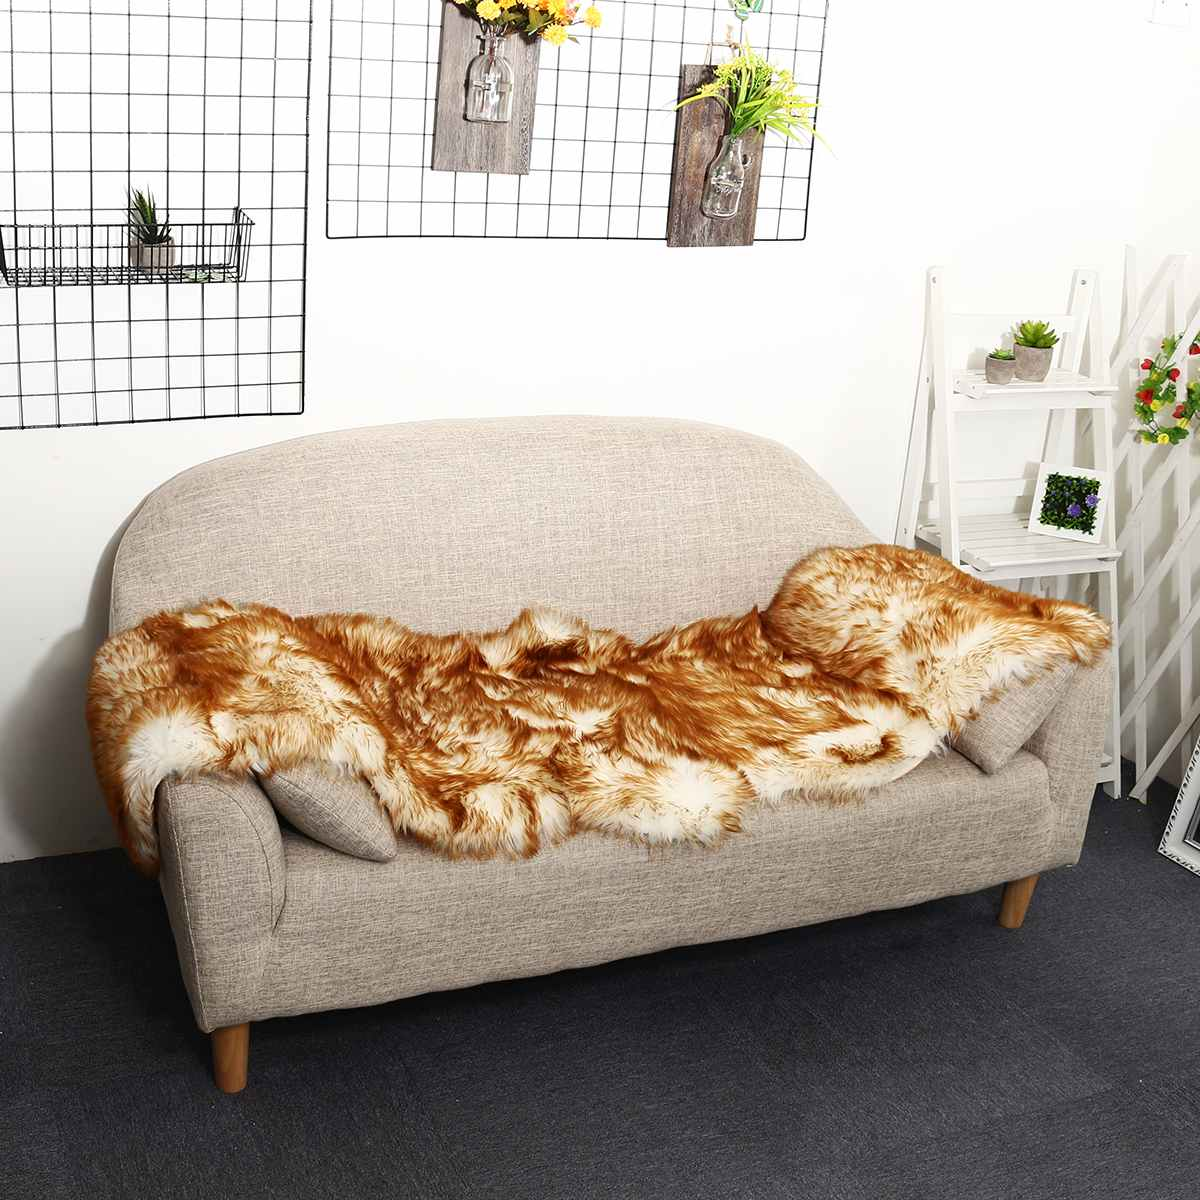 Us 26 8 33 Off Fur Artificial Sheepskin Hairy Carpet For Living Room Bedroom Rugs Skin Fur Plain Fluffy Area Rugs Bedroom Faux Mat 190x70cm In Rug